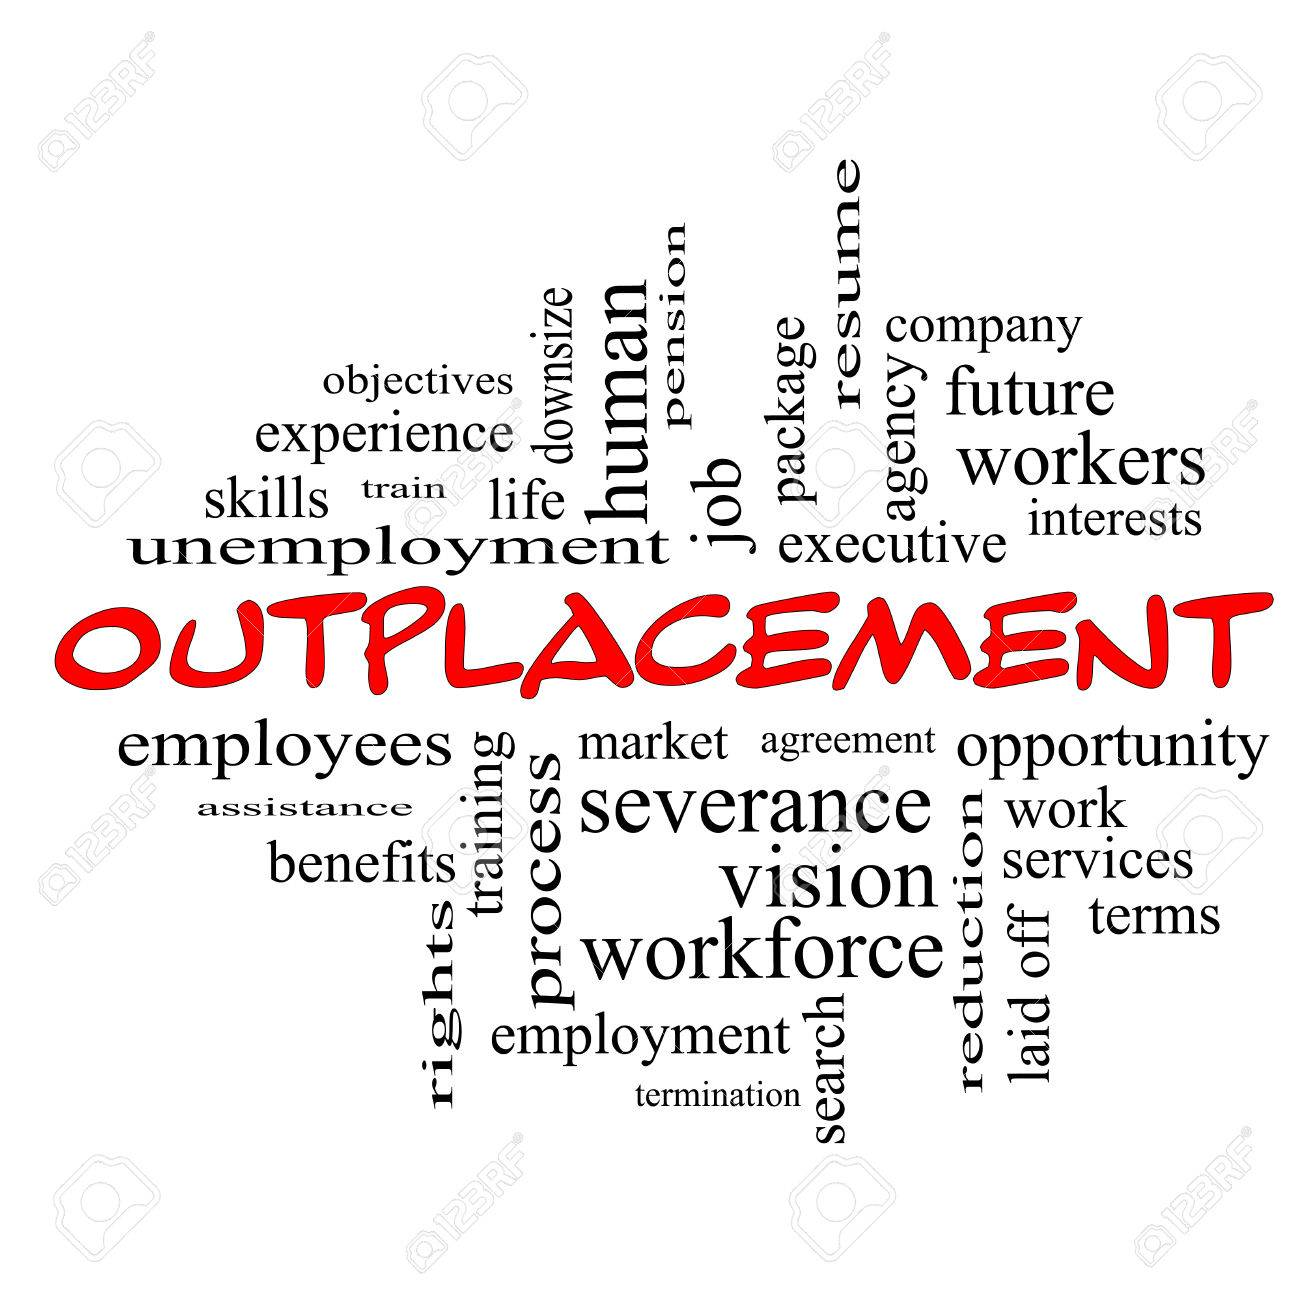 Image result for outplacement